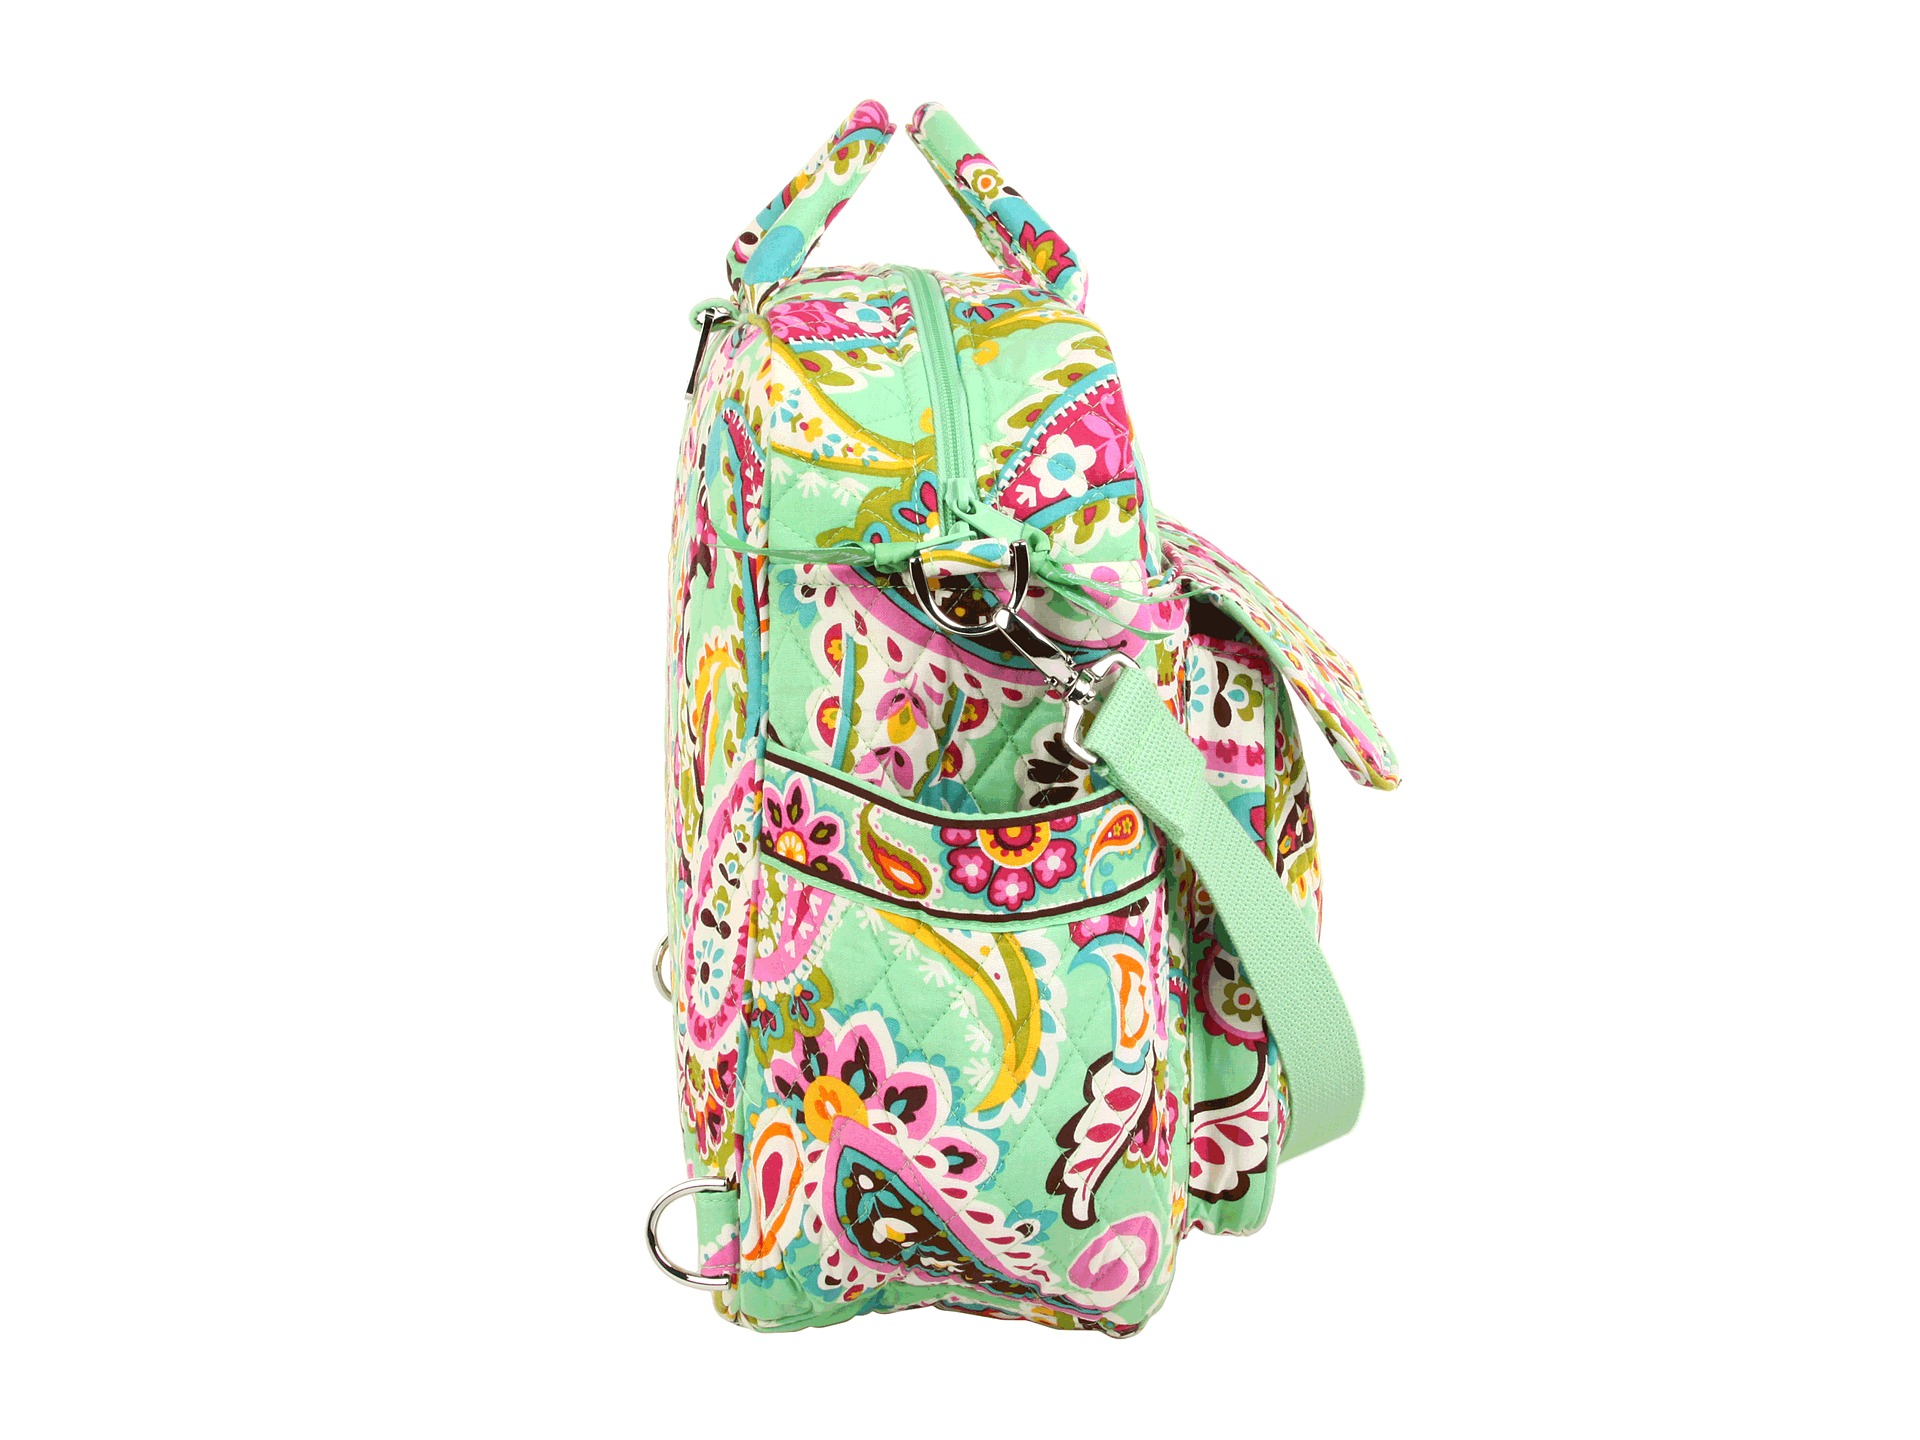 vera bradley convertible baby bag tutti frutti shipped free at zappos. Black Bedroom Furniture Sets. Home Design Ideas